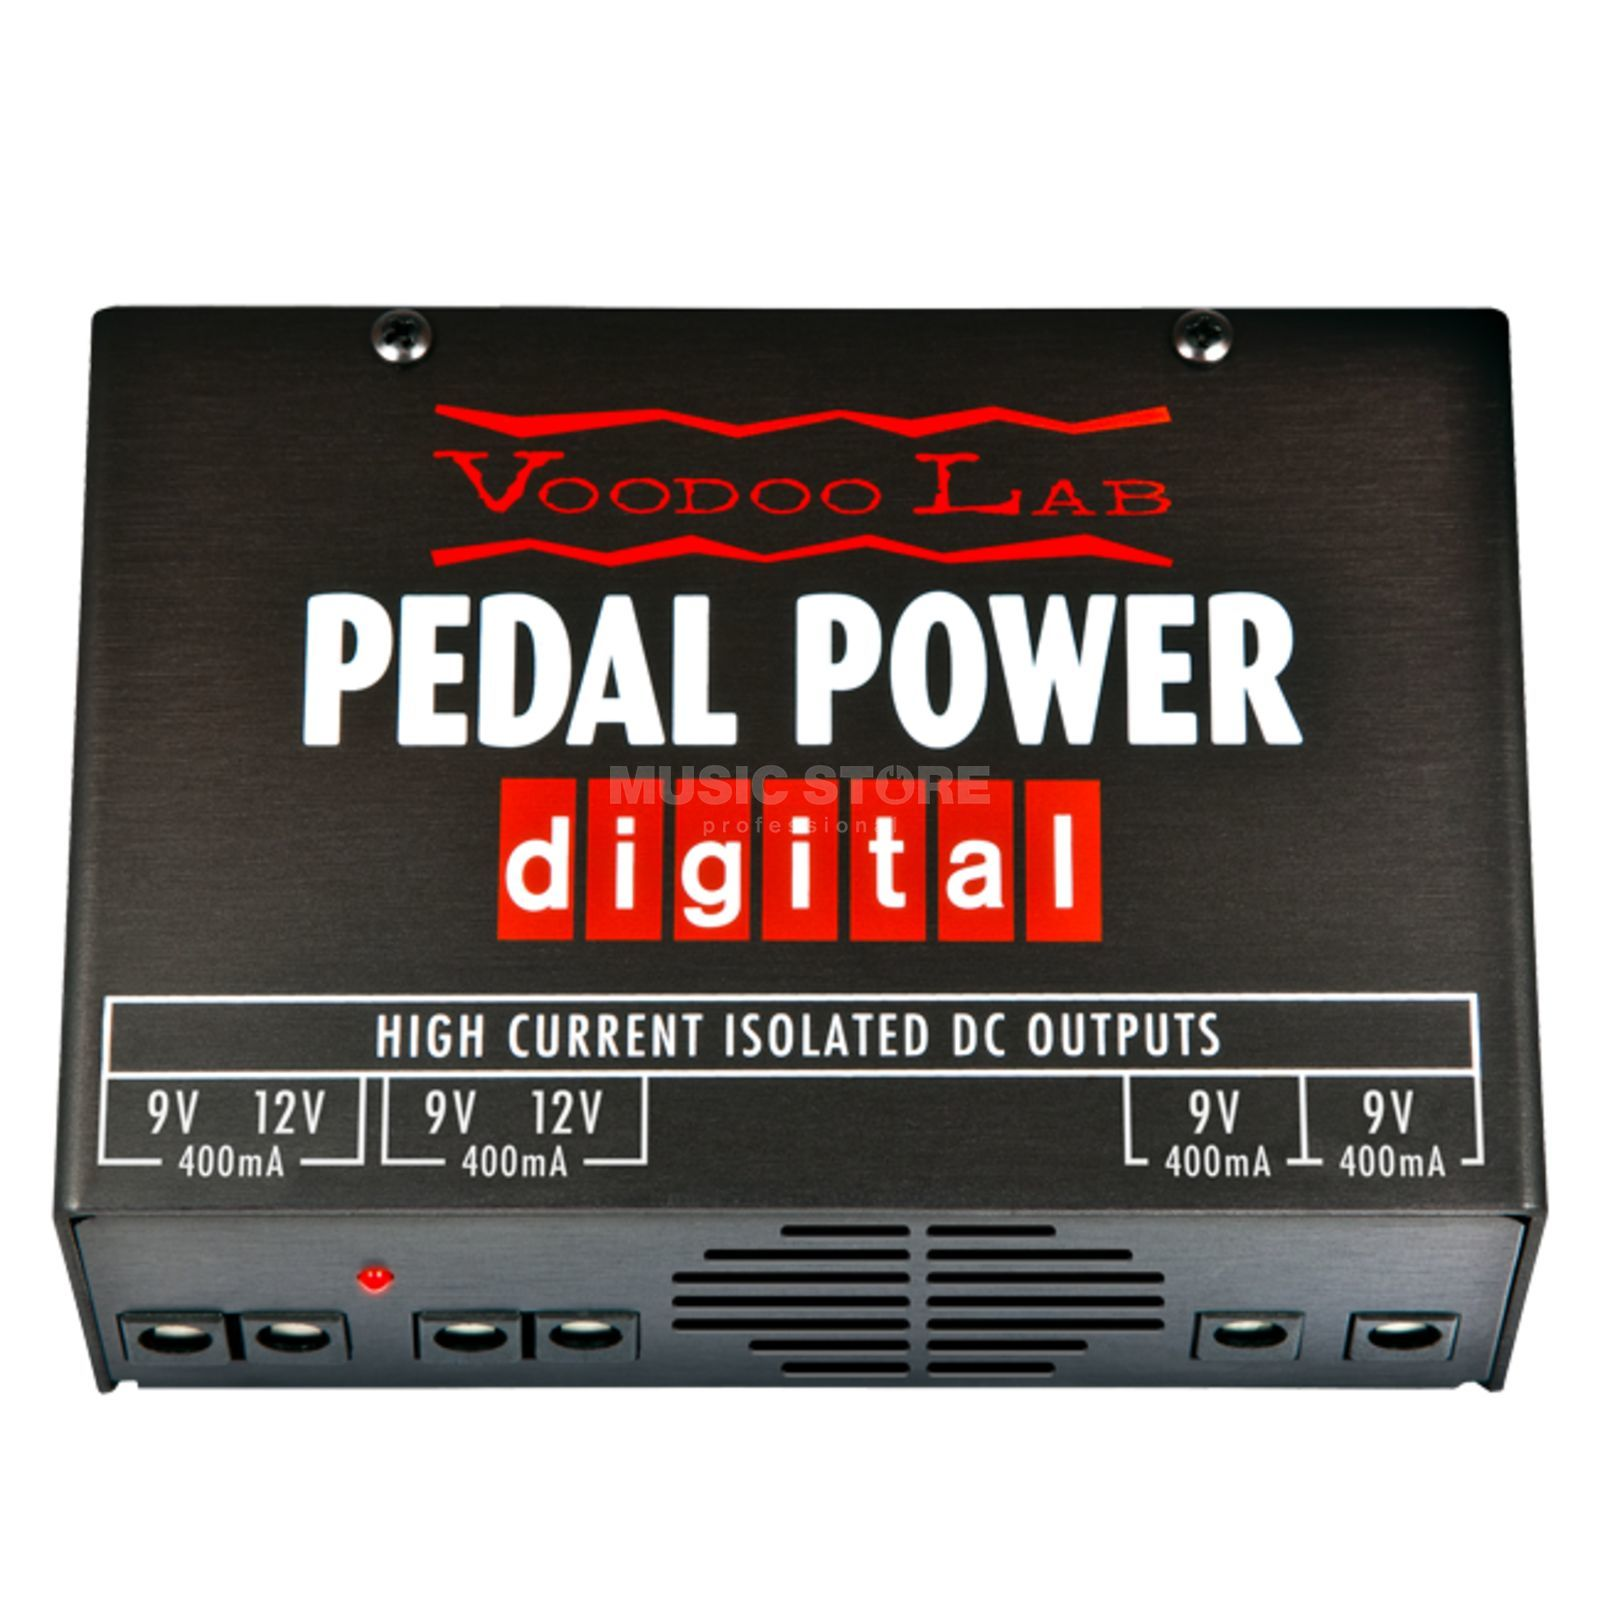 Voodoo-Lab Pedal Power Digital Produktbild